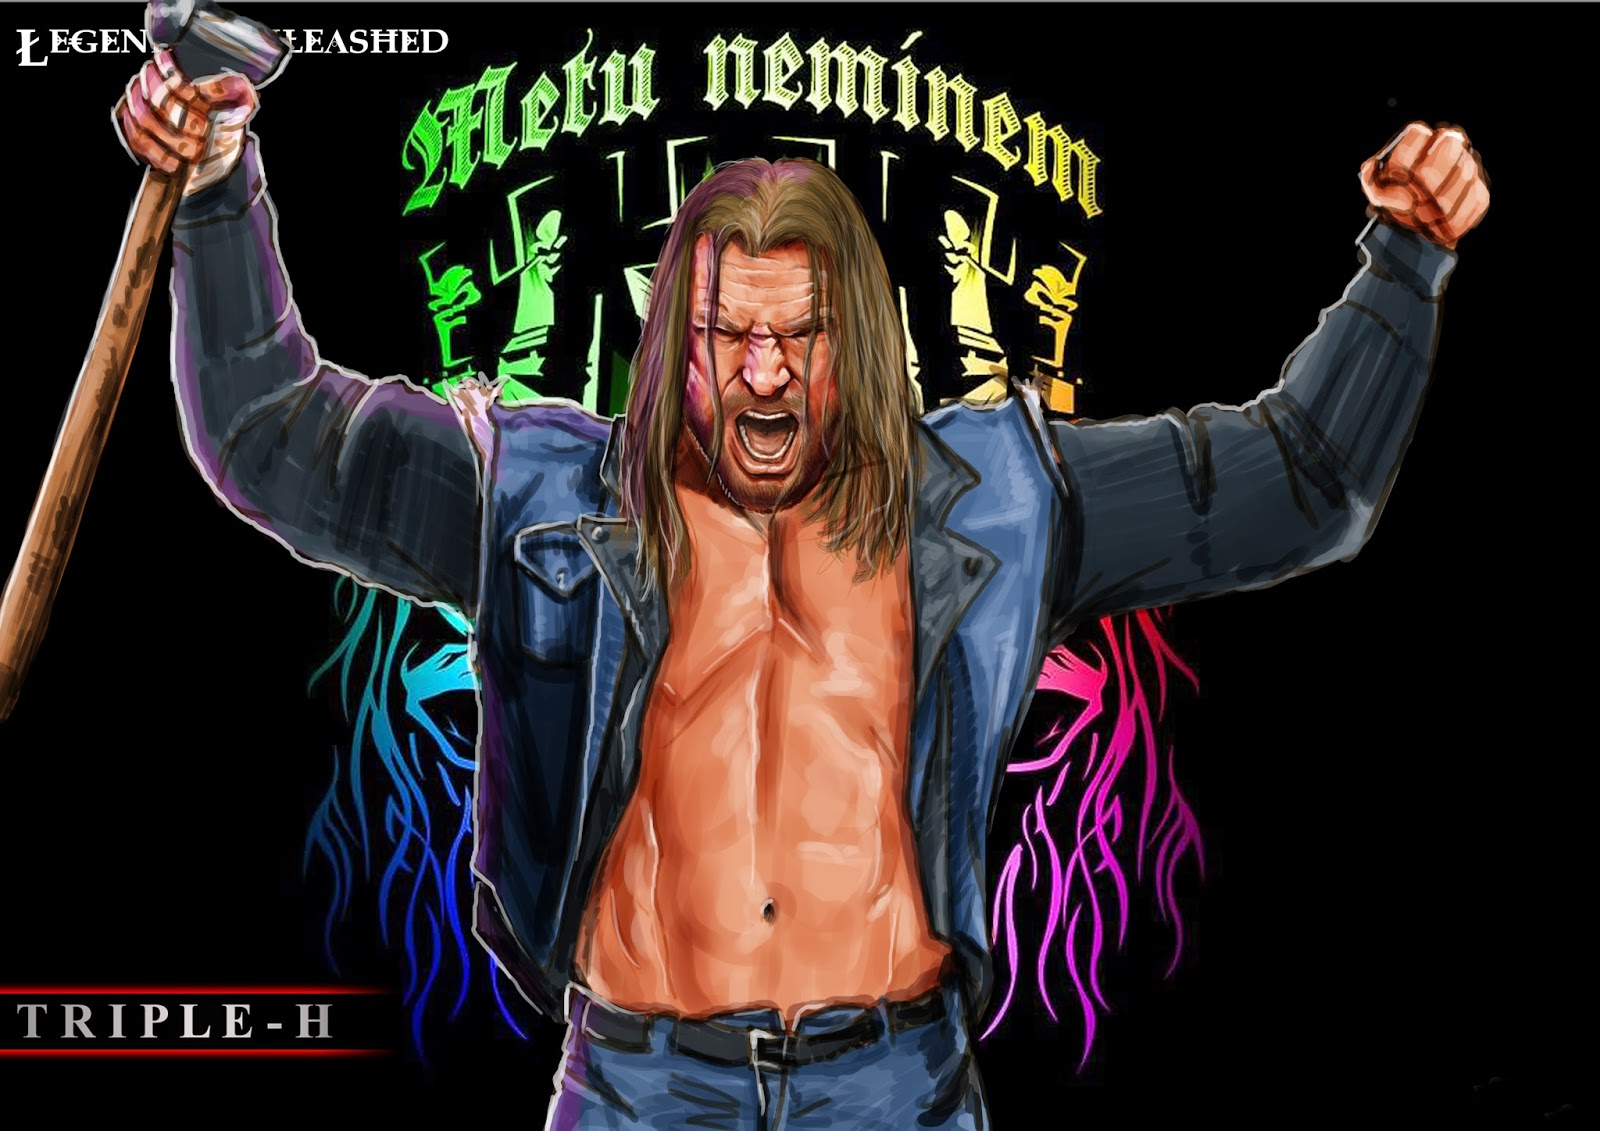 download wwe wallpapers download wwe games 1600x1131